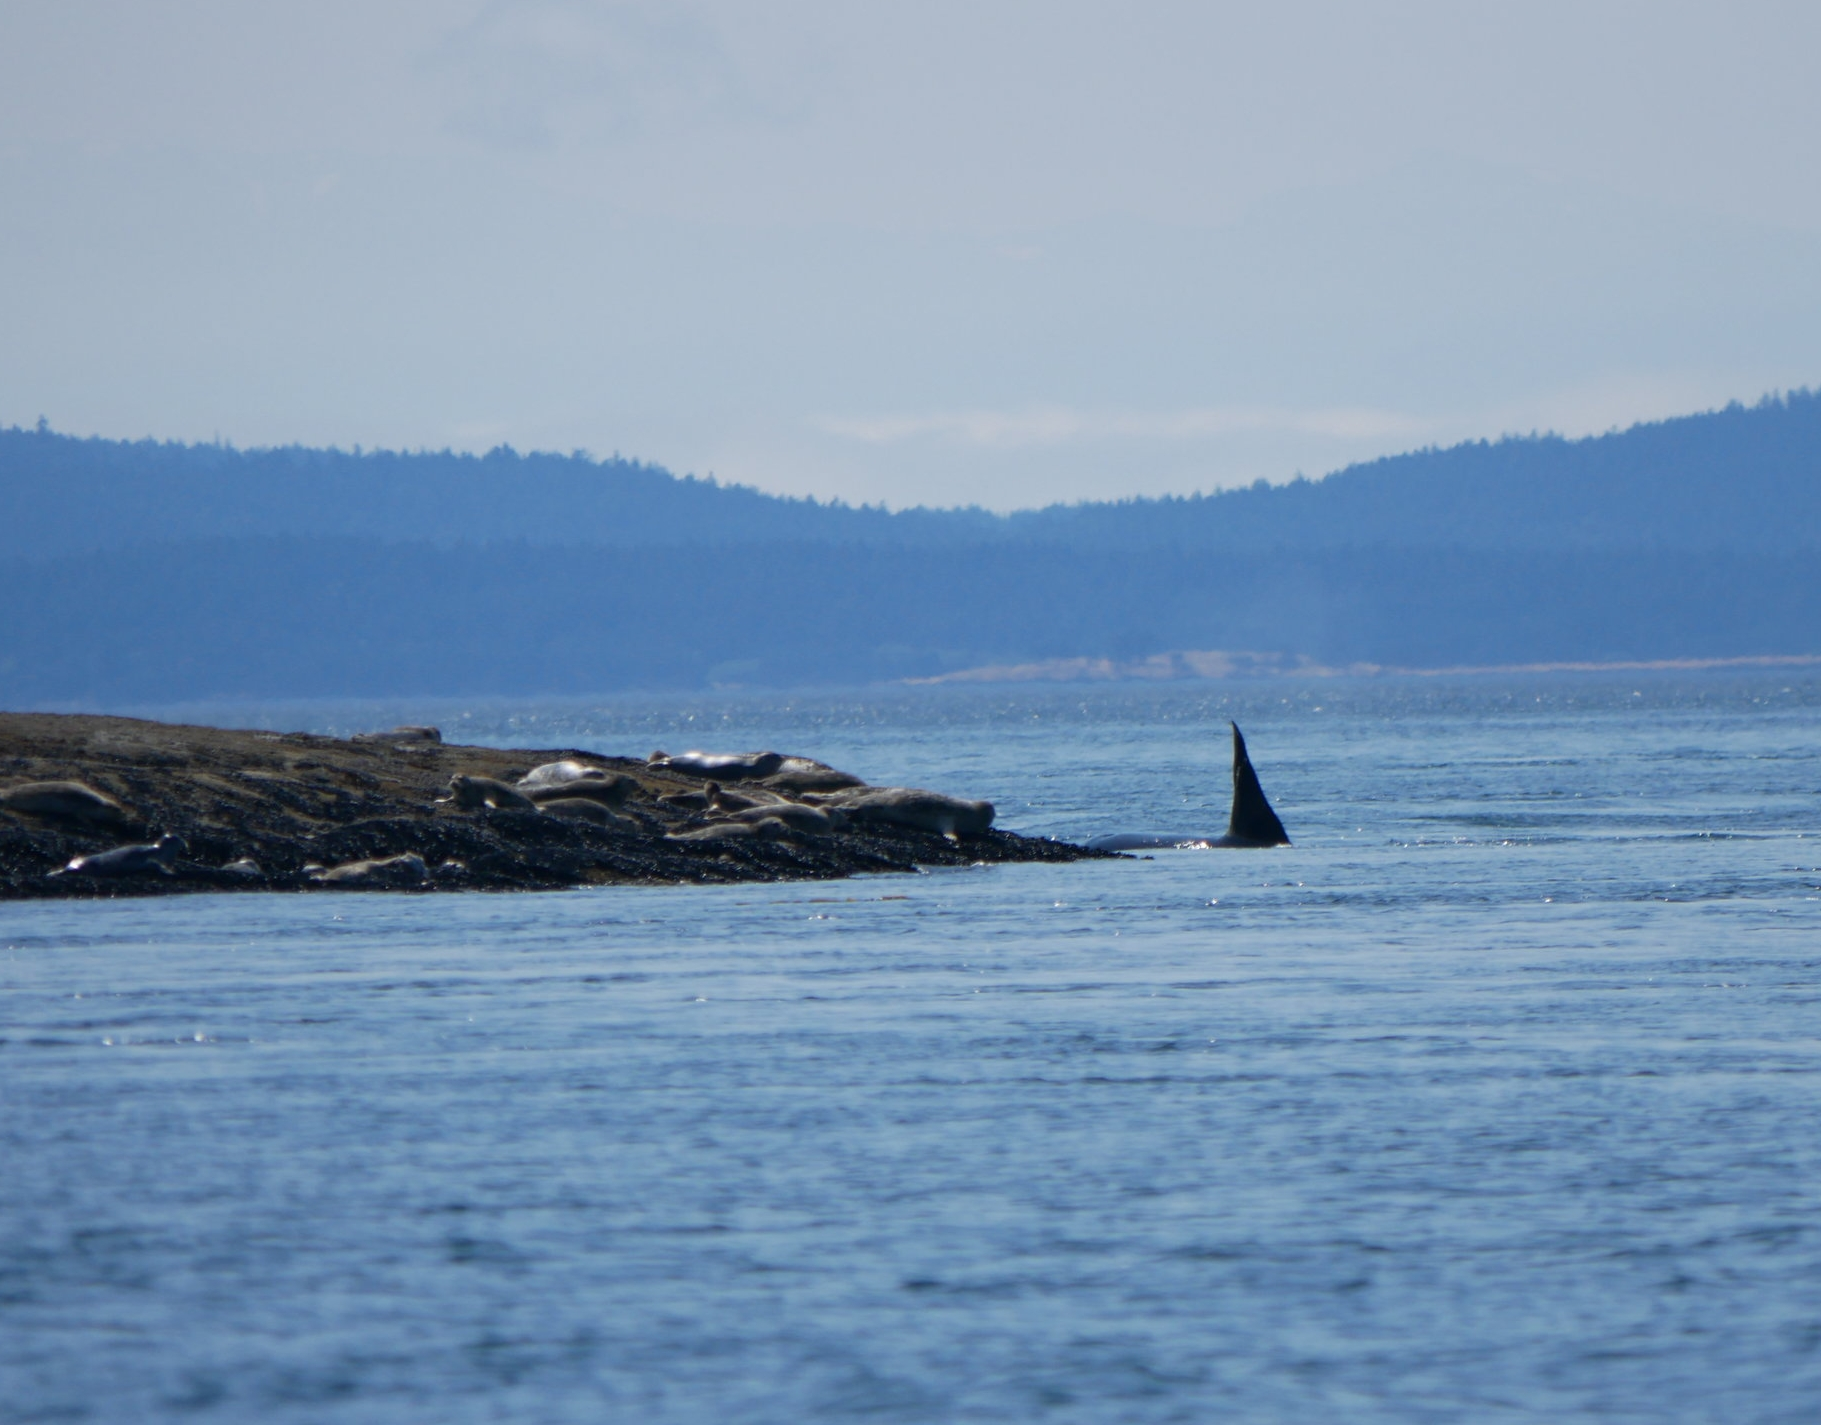 T19C circling around the reef with a bunch of scared seals taking shelter on the rocks. Photo by Val Watson